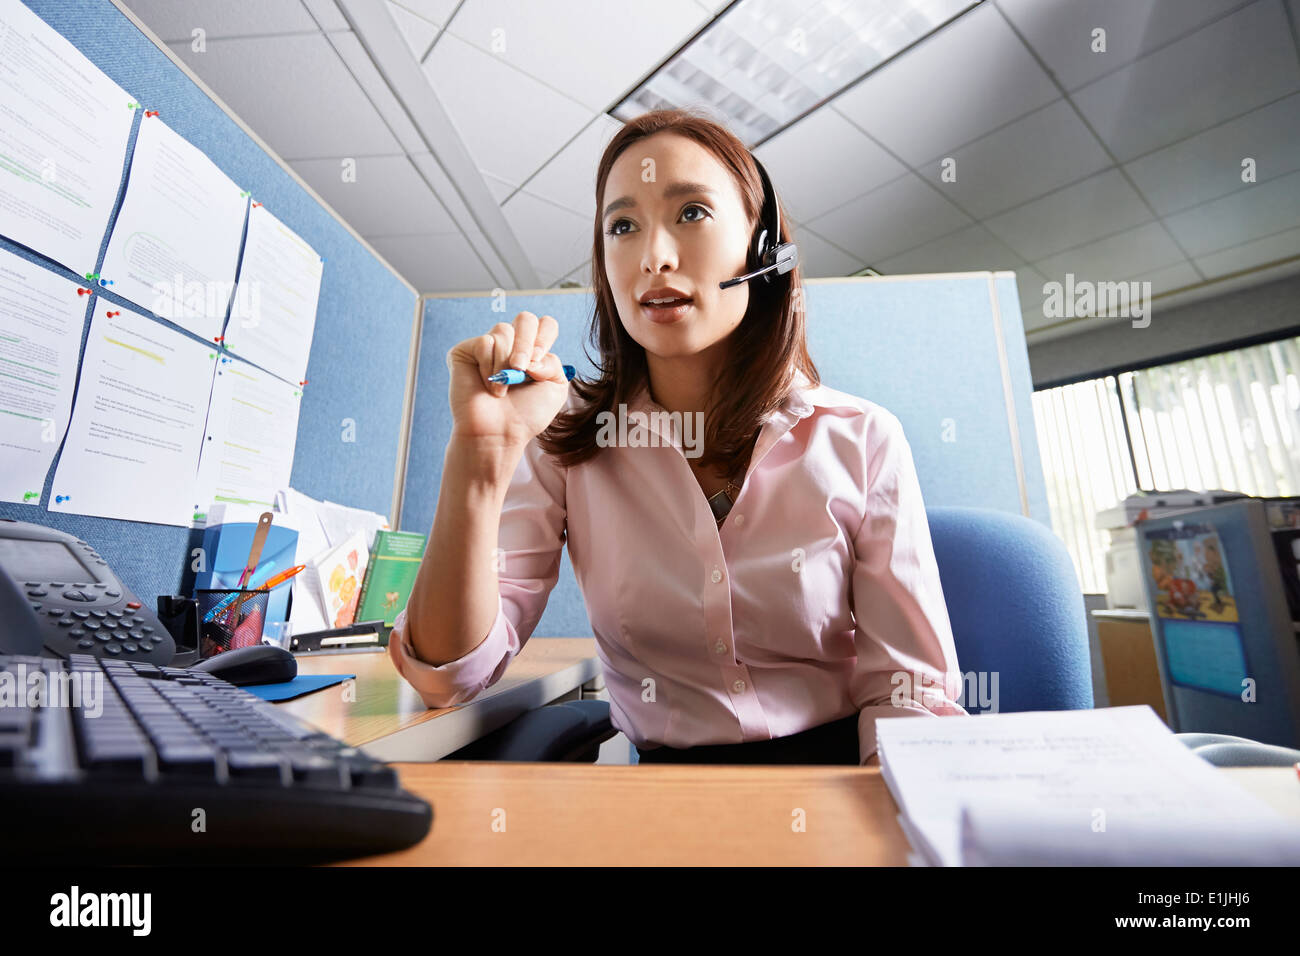 Young female office worker talking on headset in office Photo Stock